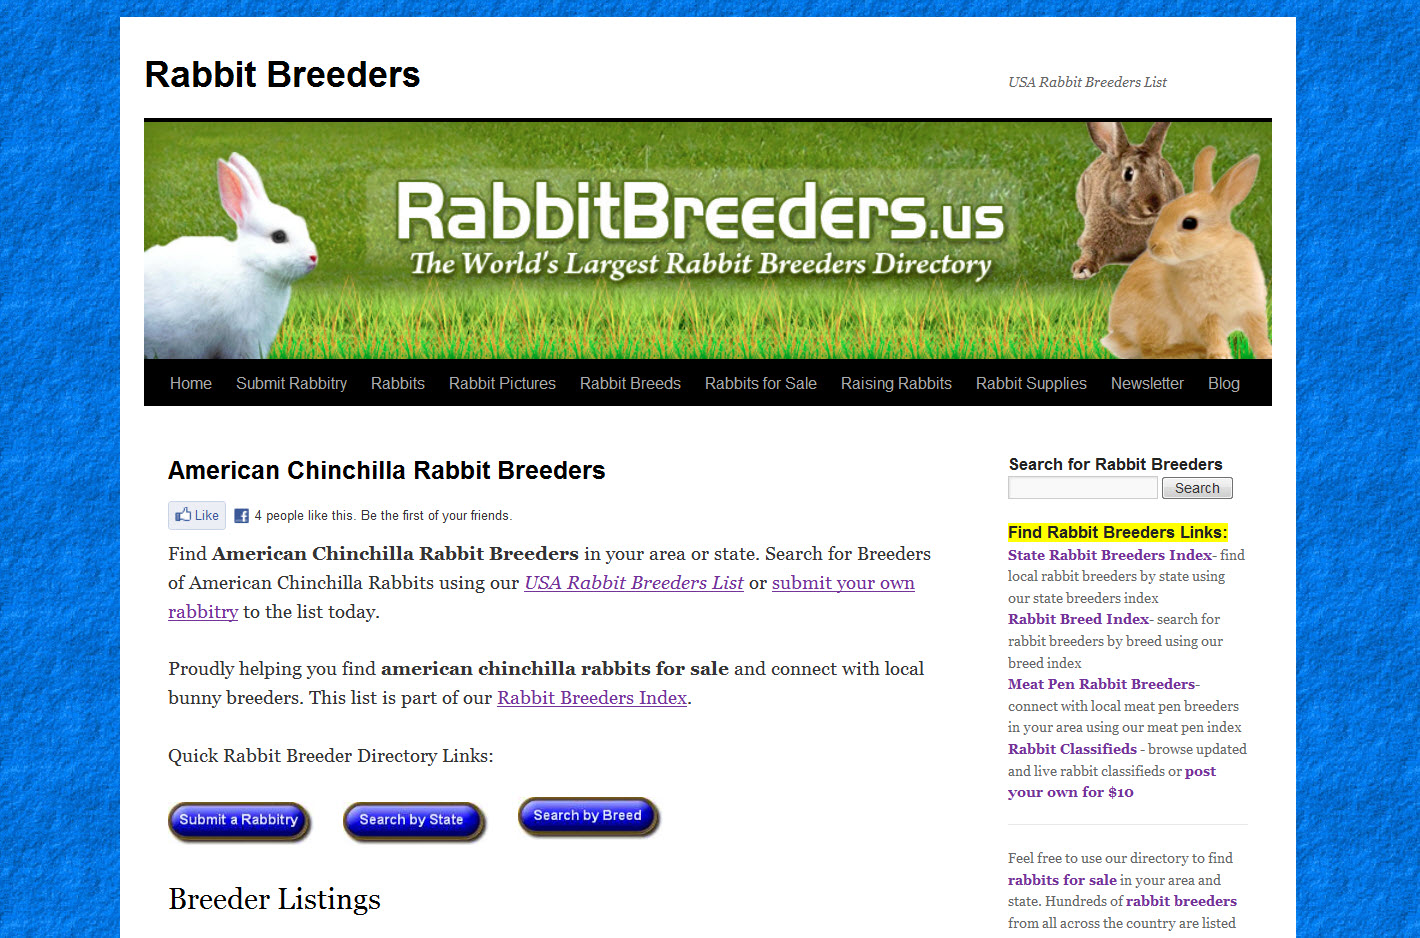 American Chinchilla Rabbit Breeders